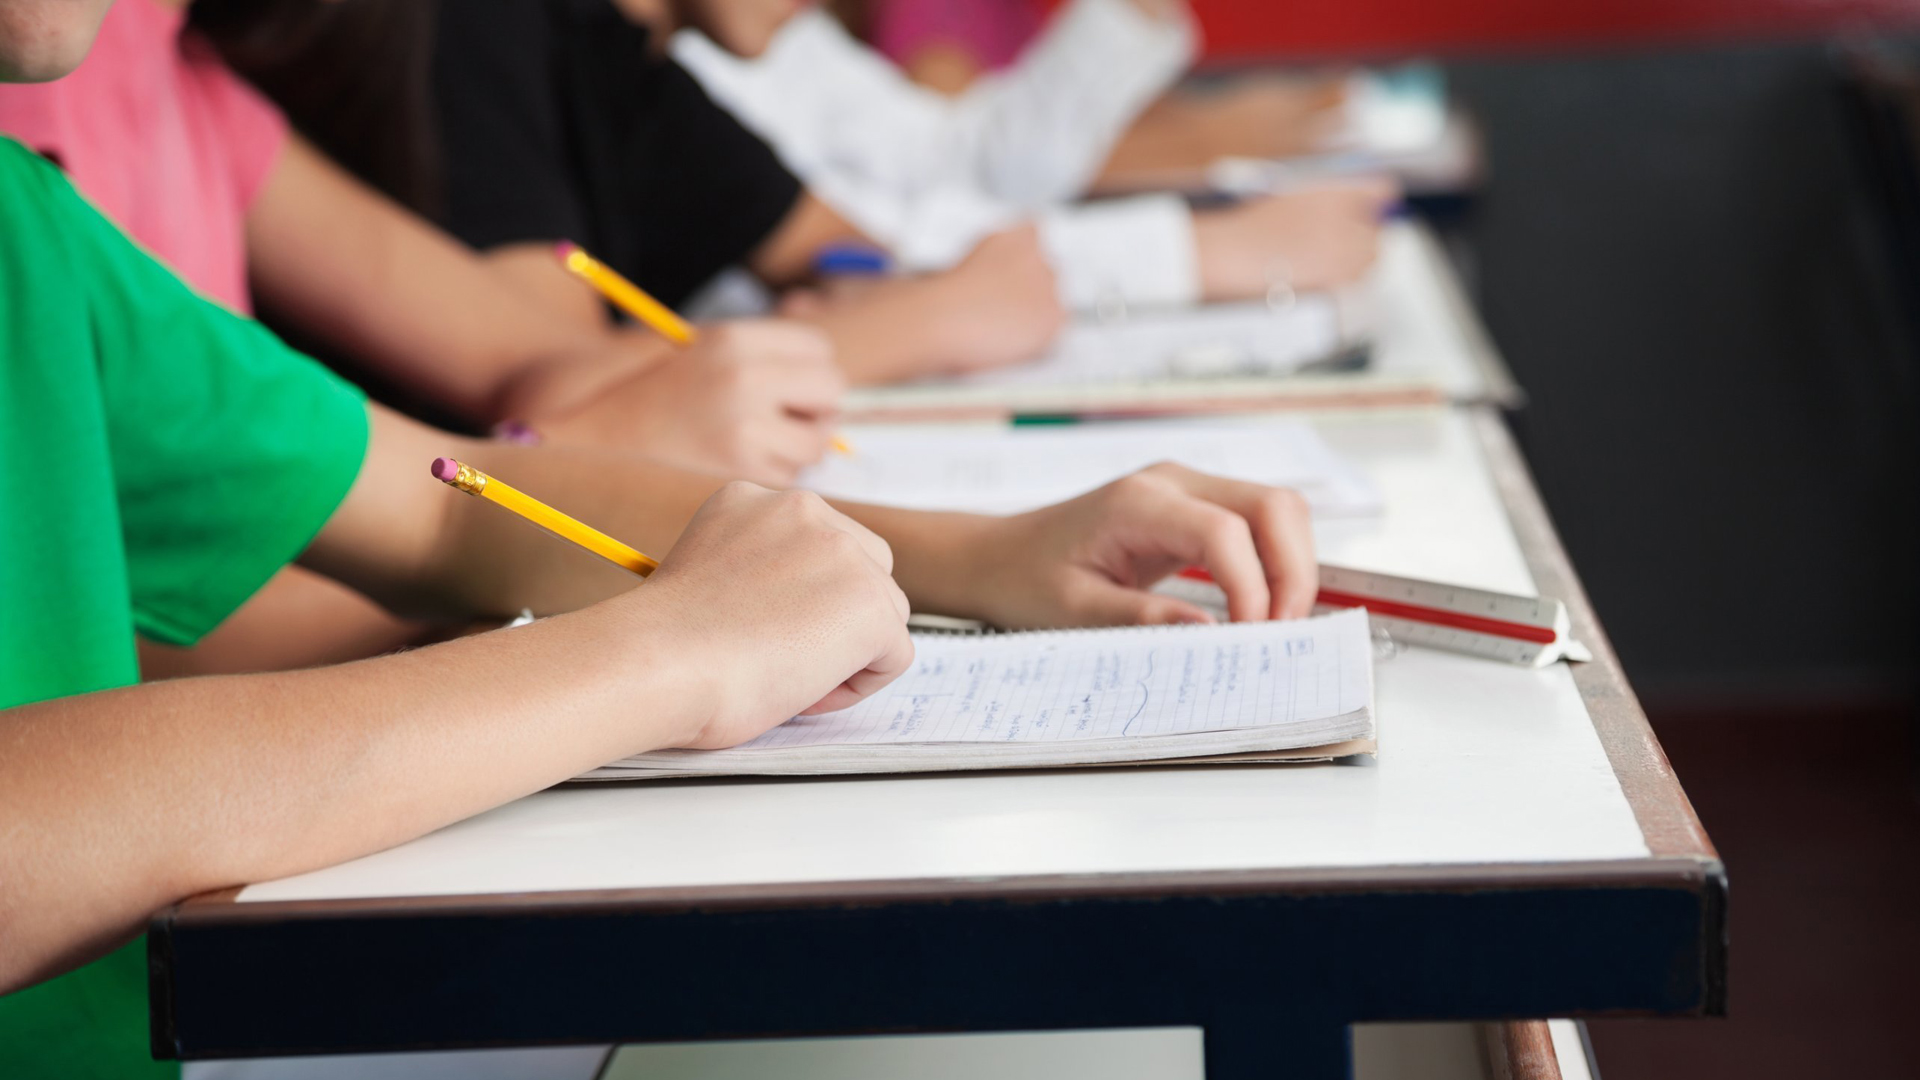 Students are seen in a classroom in this file photo. (Credit: Shutterstock)